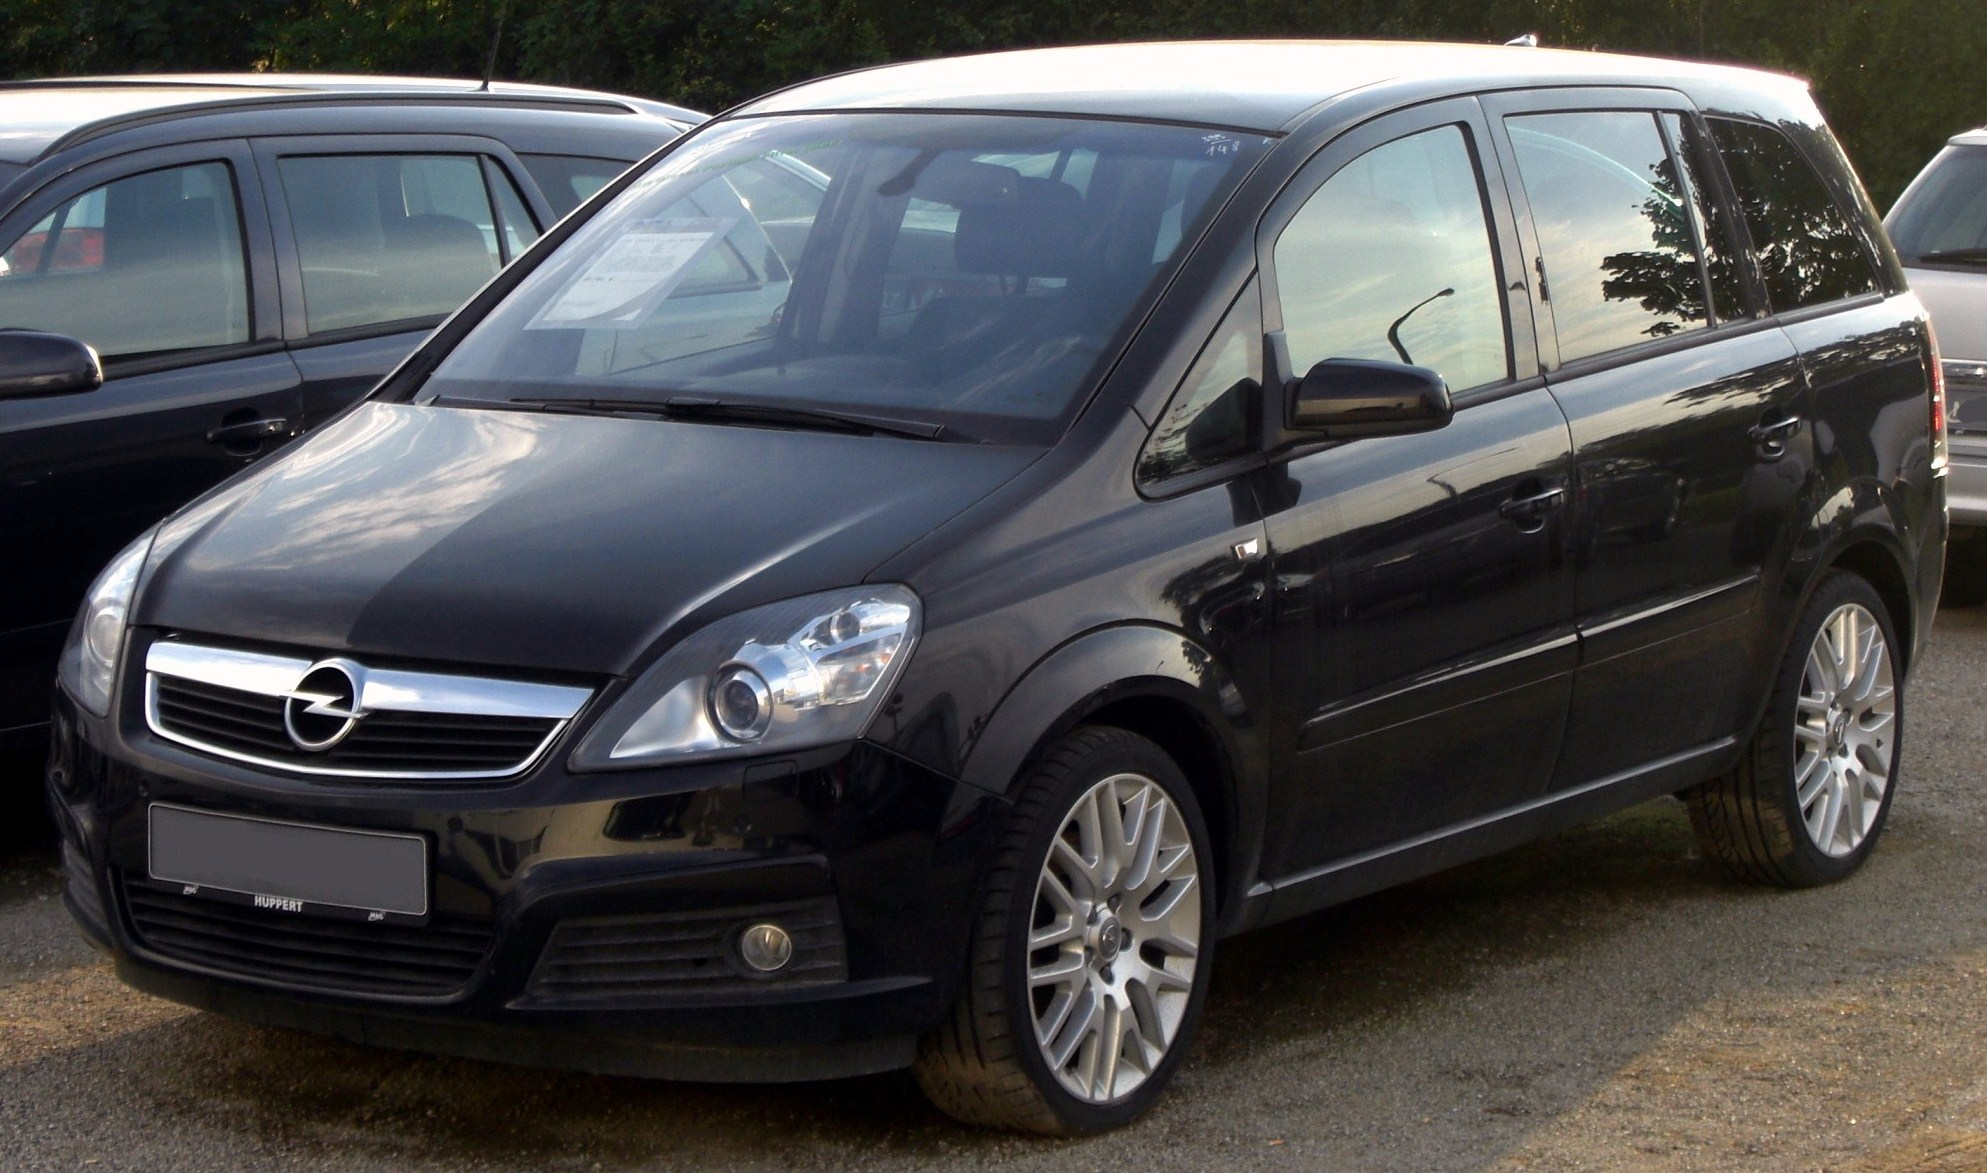 2010 opel zafira photos informations articles. Black Bedroom Furniture Sets. Home Design Ideas